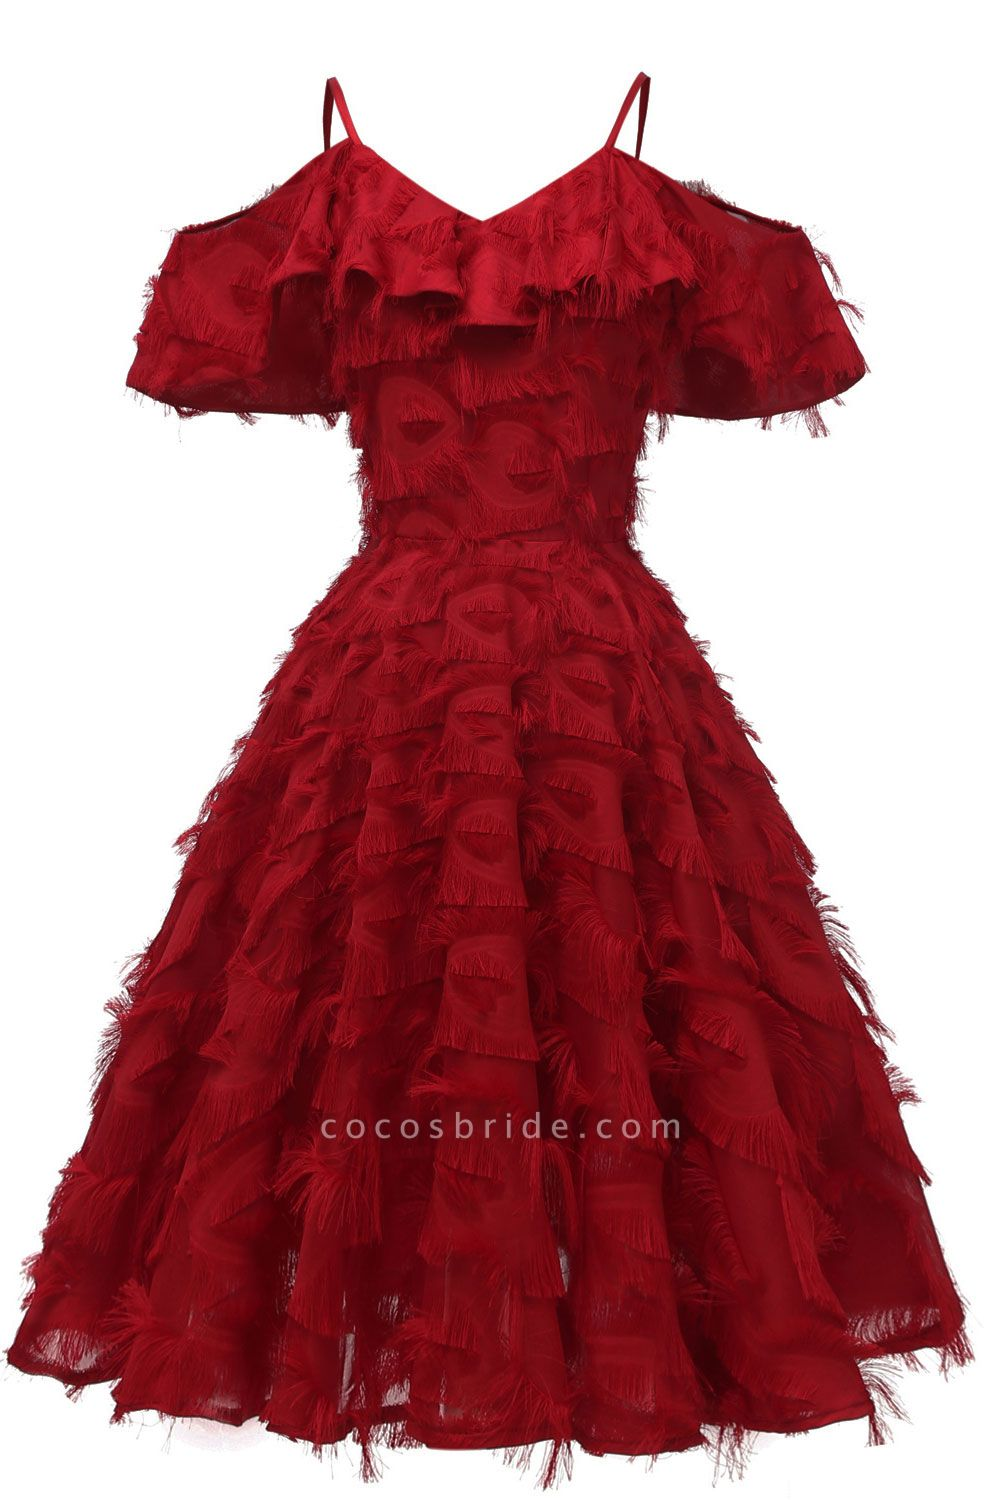 New Spaghetti Straps Artifical Feather Princess Vintage Dresses for Homecoming | Womens Retro A-line Burgundy Cocktail Dress